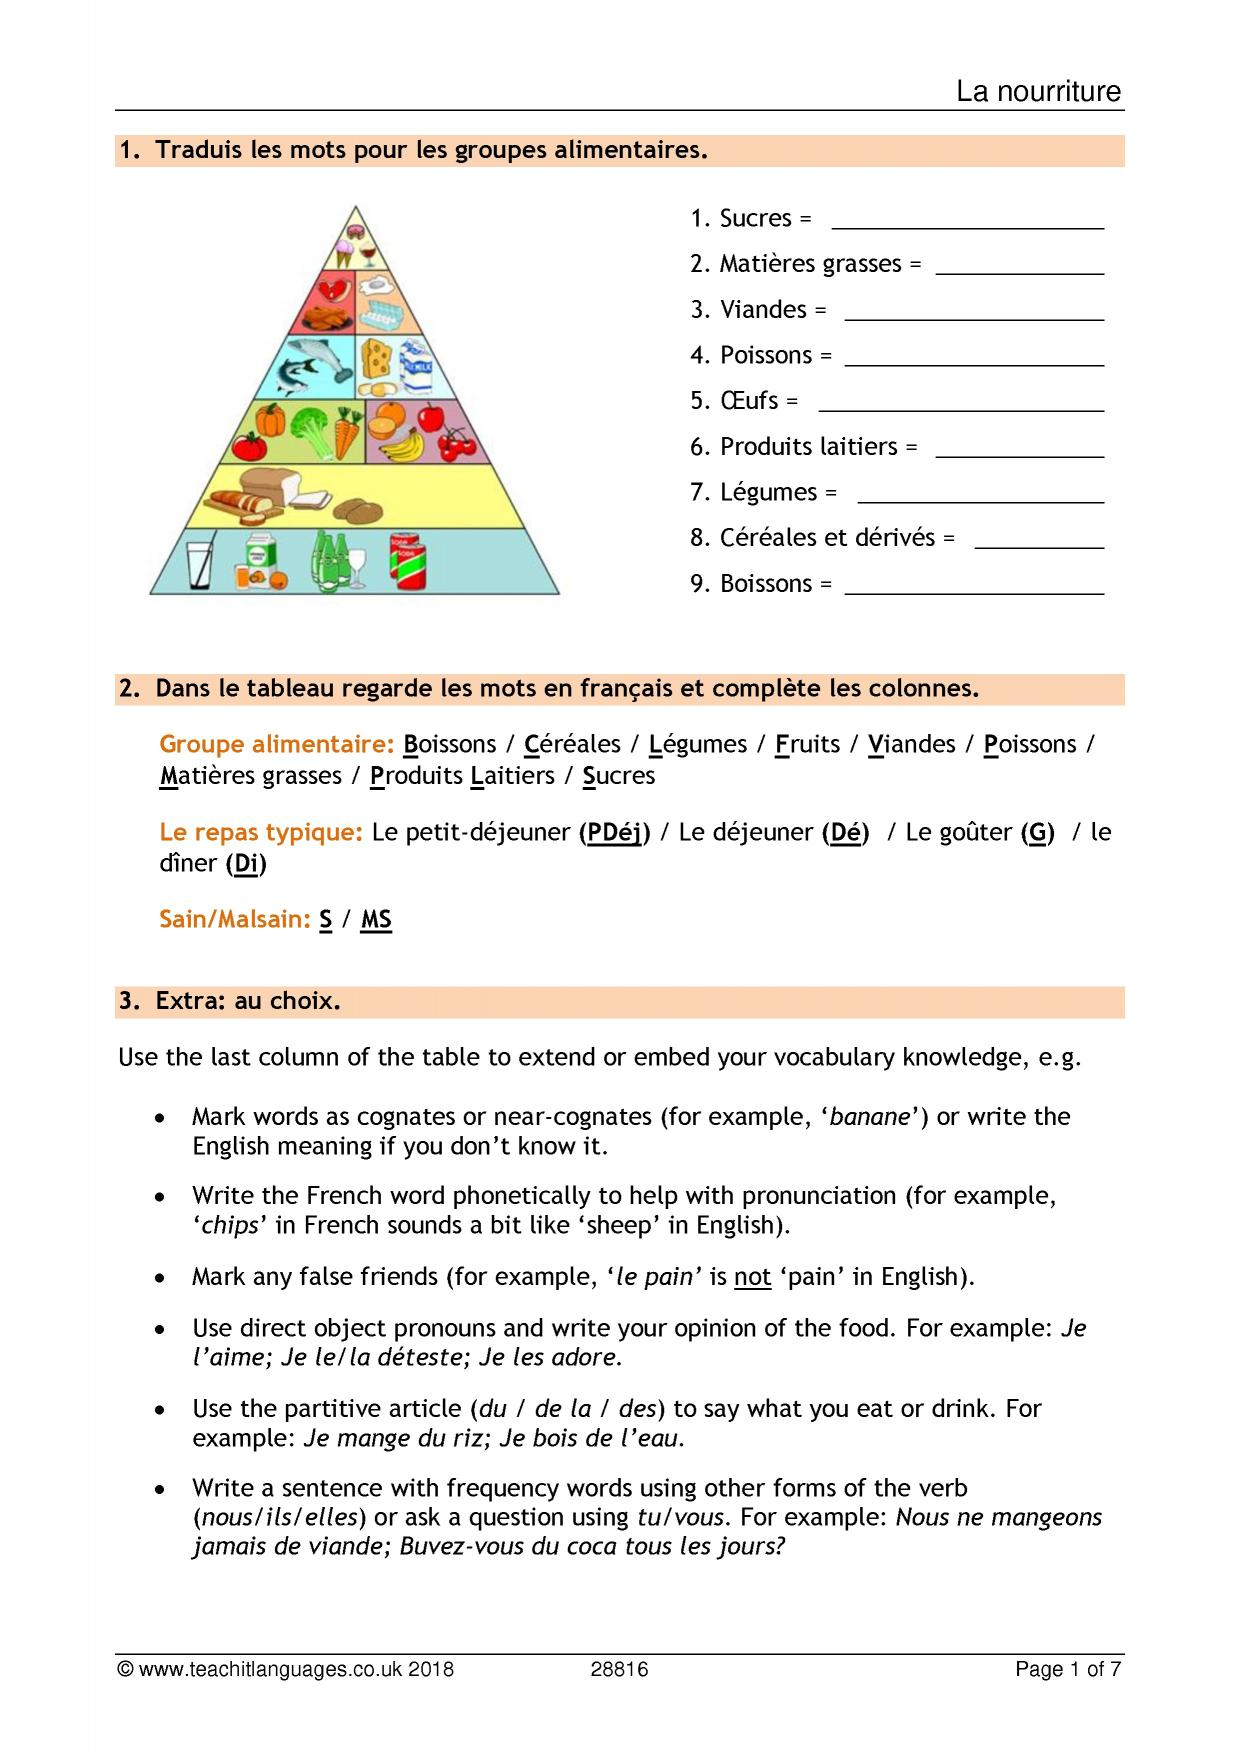 French Language Teaching Resources